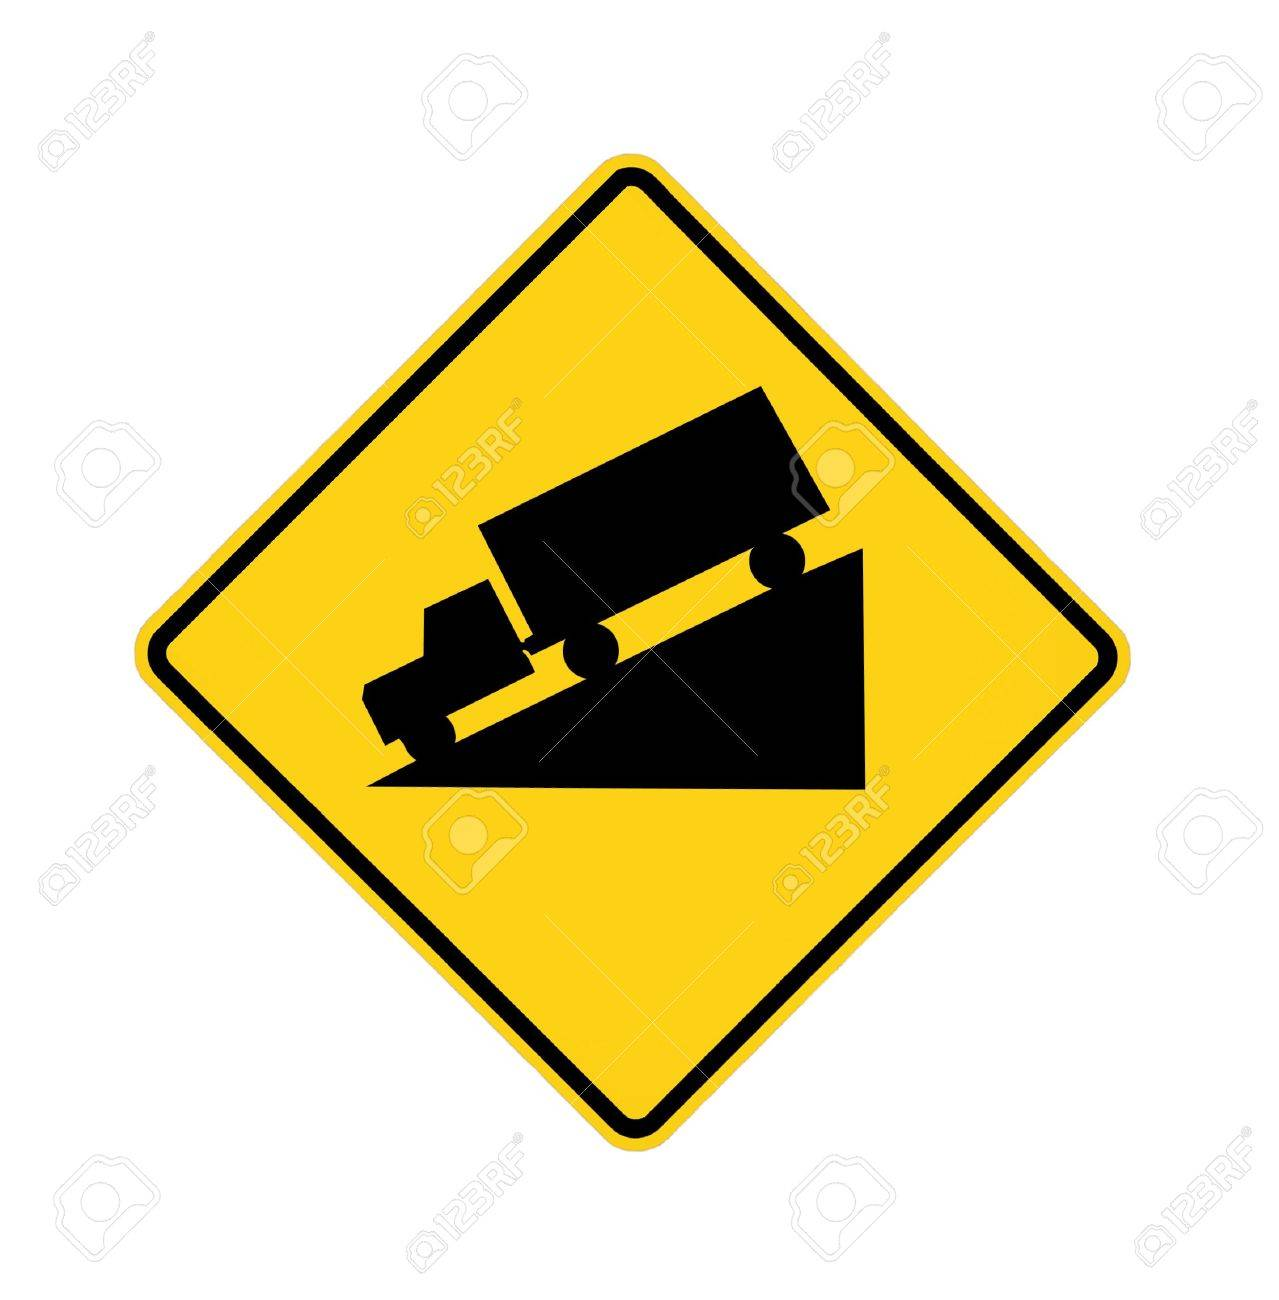 road sign - truck downhill Stock Photo - 5984836